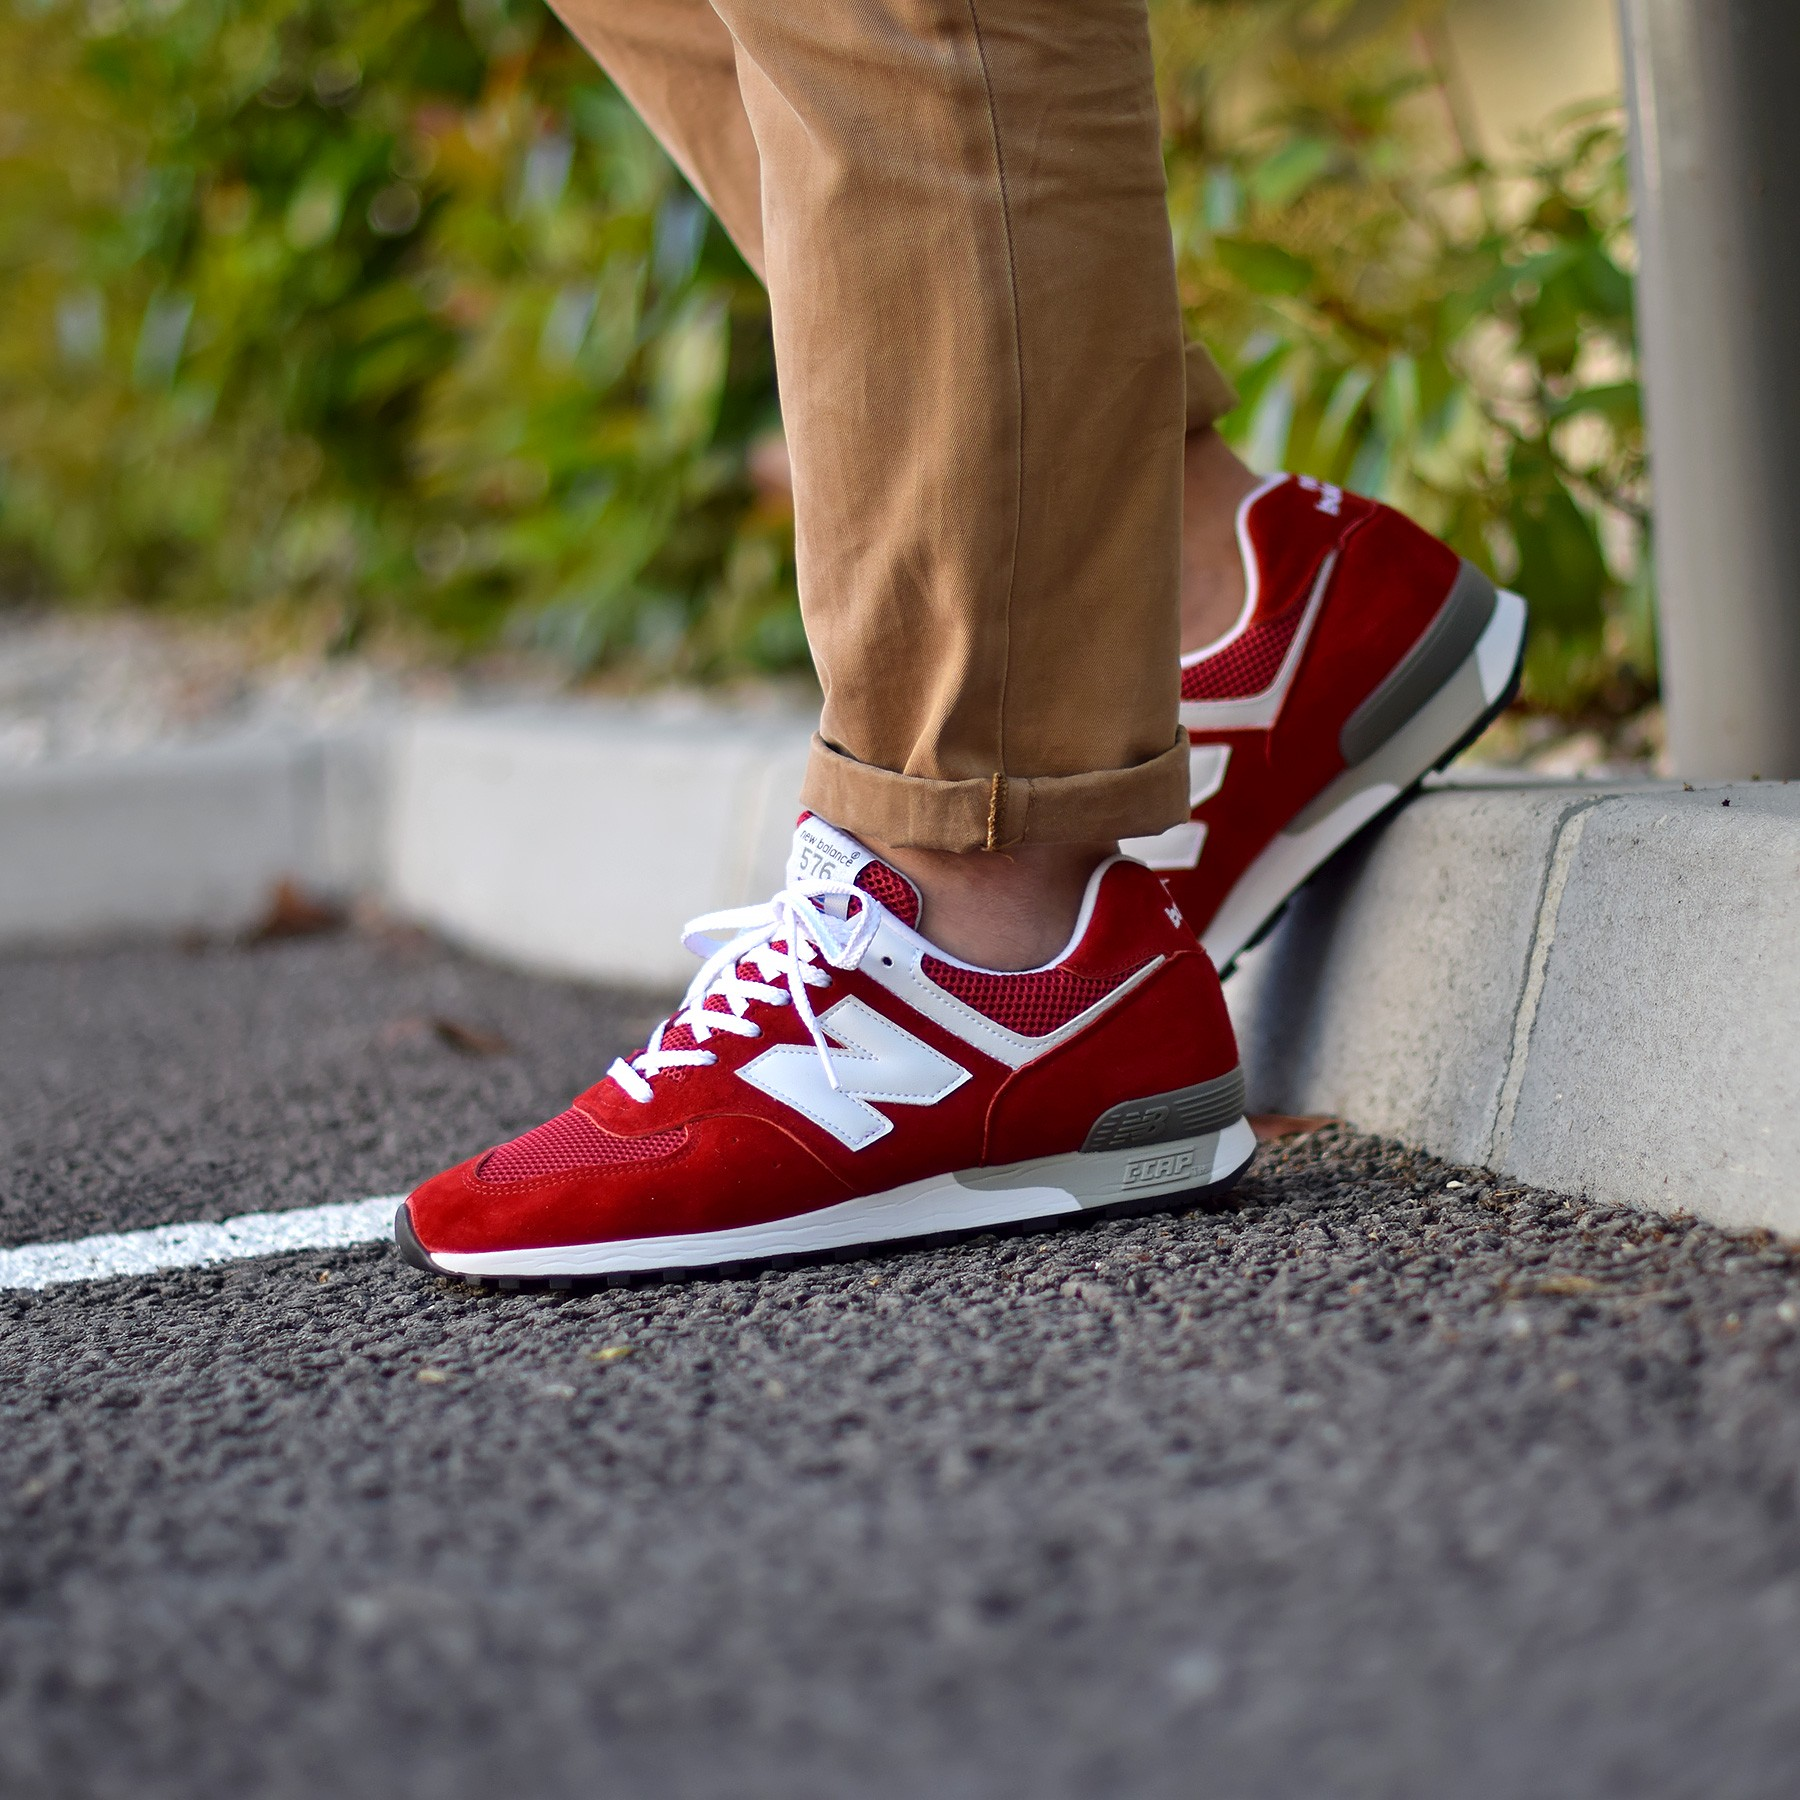 New Balance 576 RR - Made in UK - Sneakers.fr